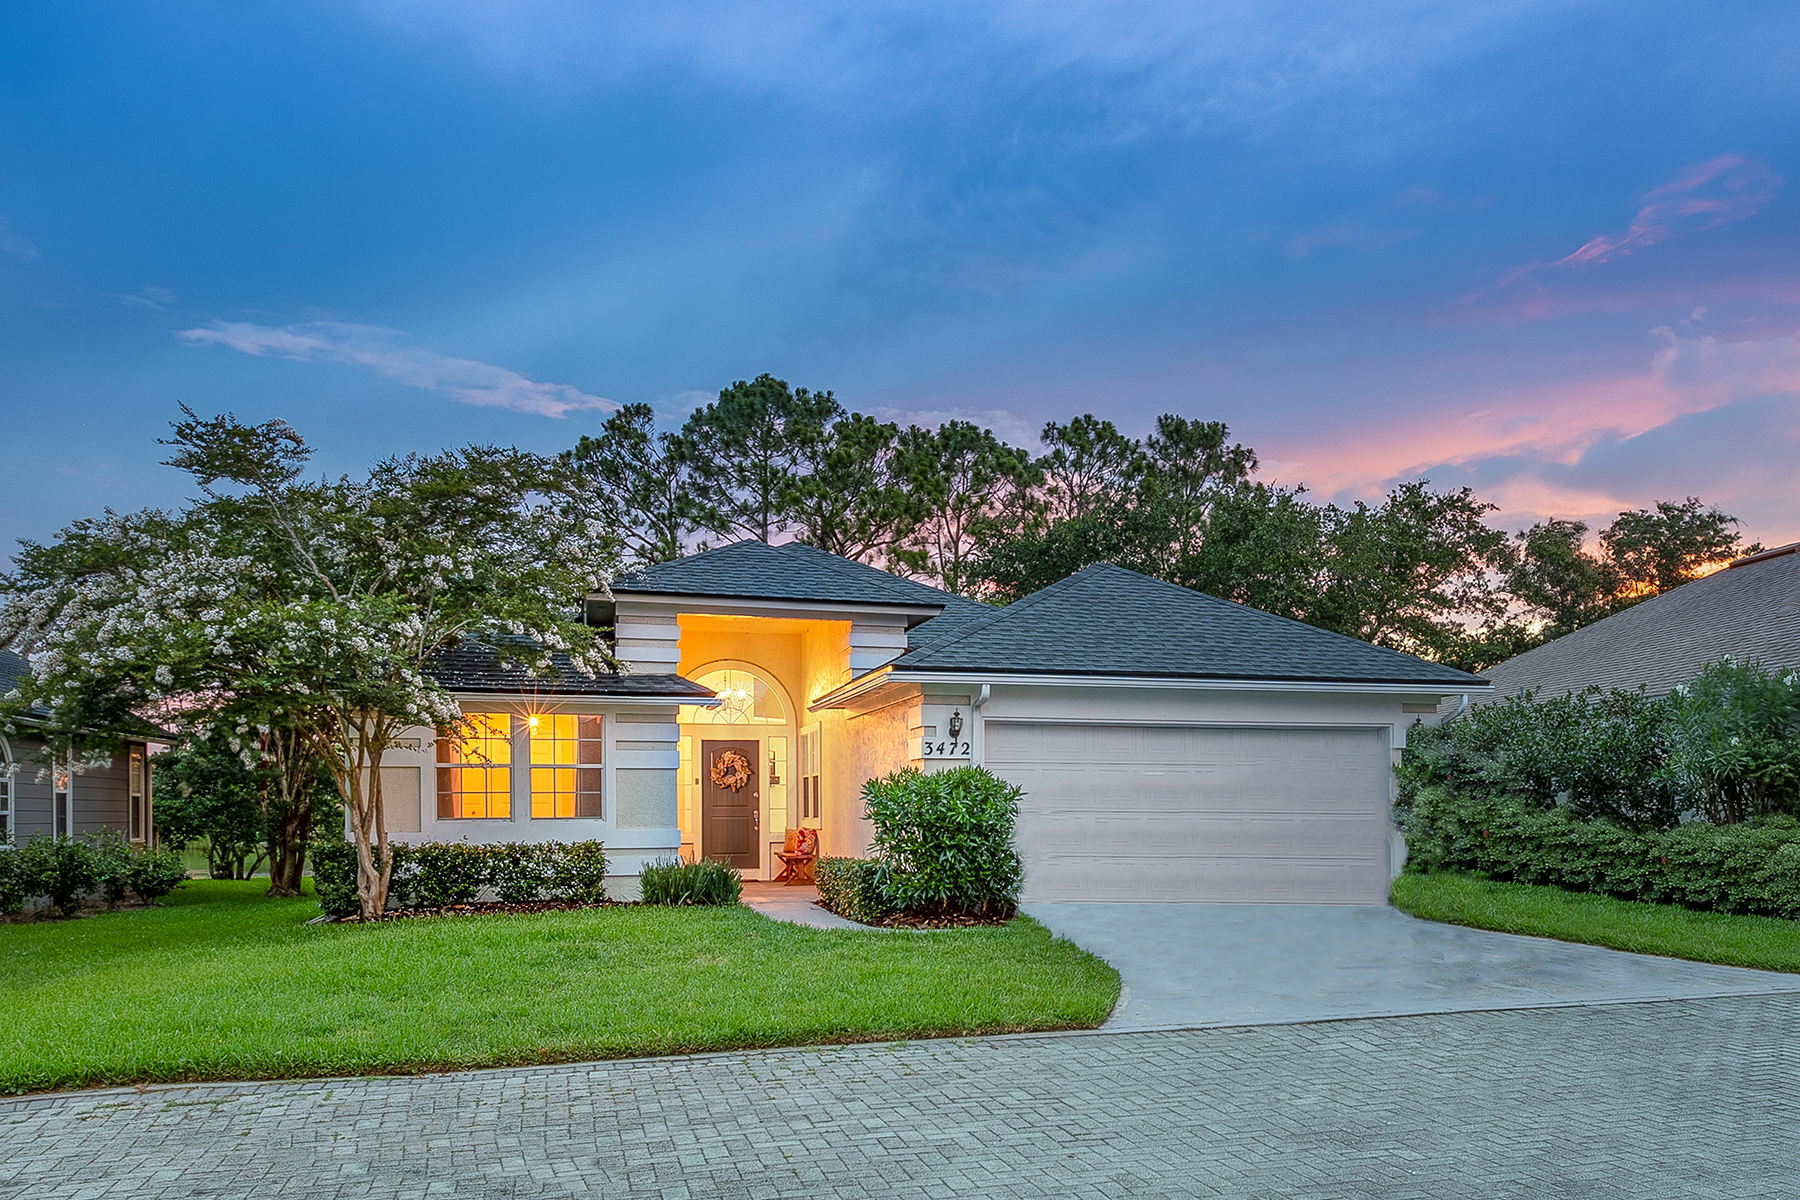 Single Family Homes for Sale at Sanctuary Beach House 3472 Sanctuary Way Jacksonville Beach, Florida 32250 United States